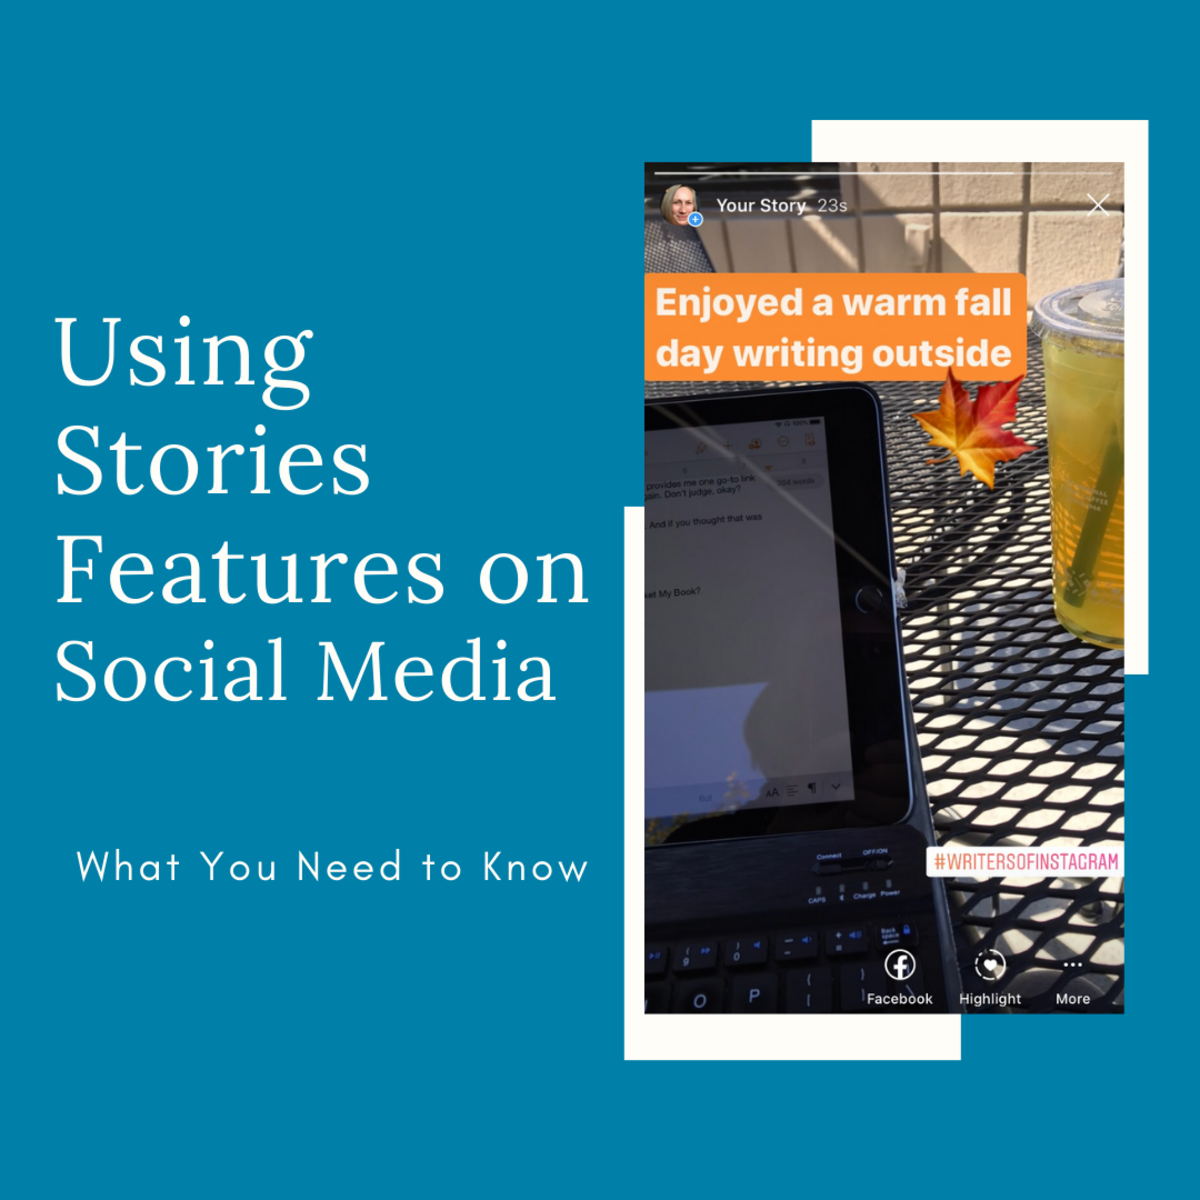 Using Stories Features on Social Media: What You Need to Know